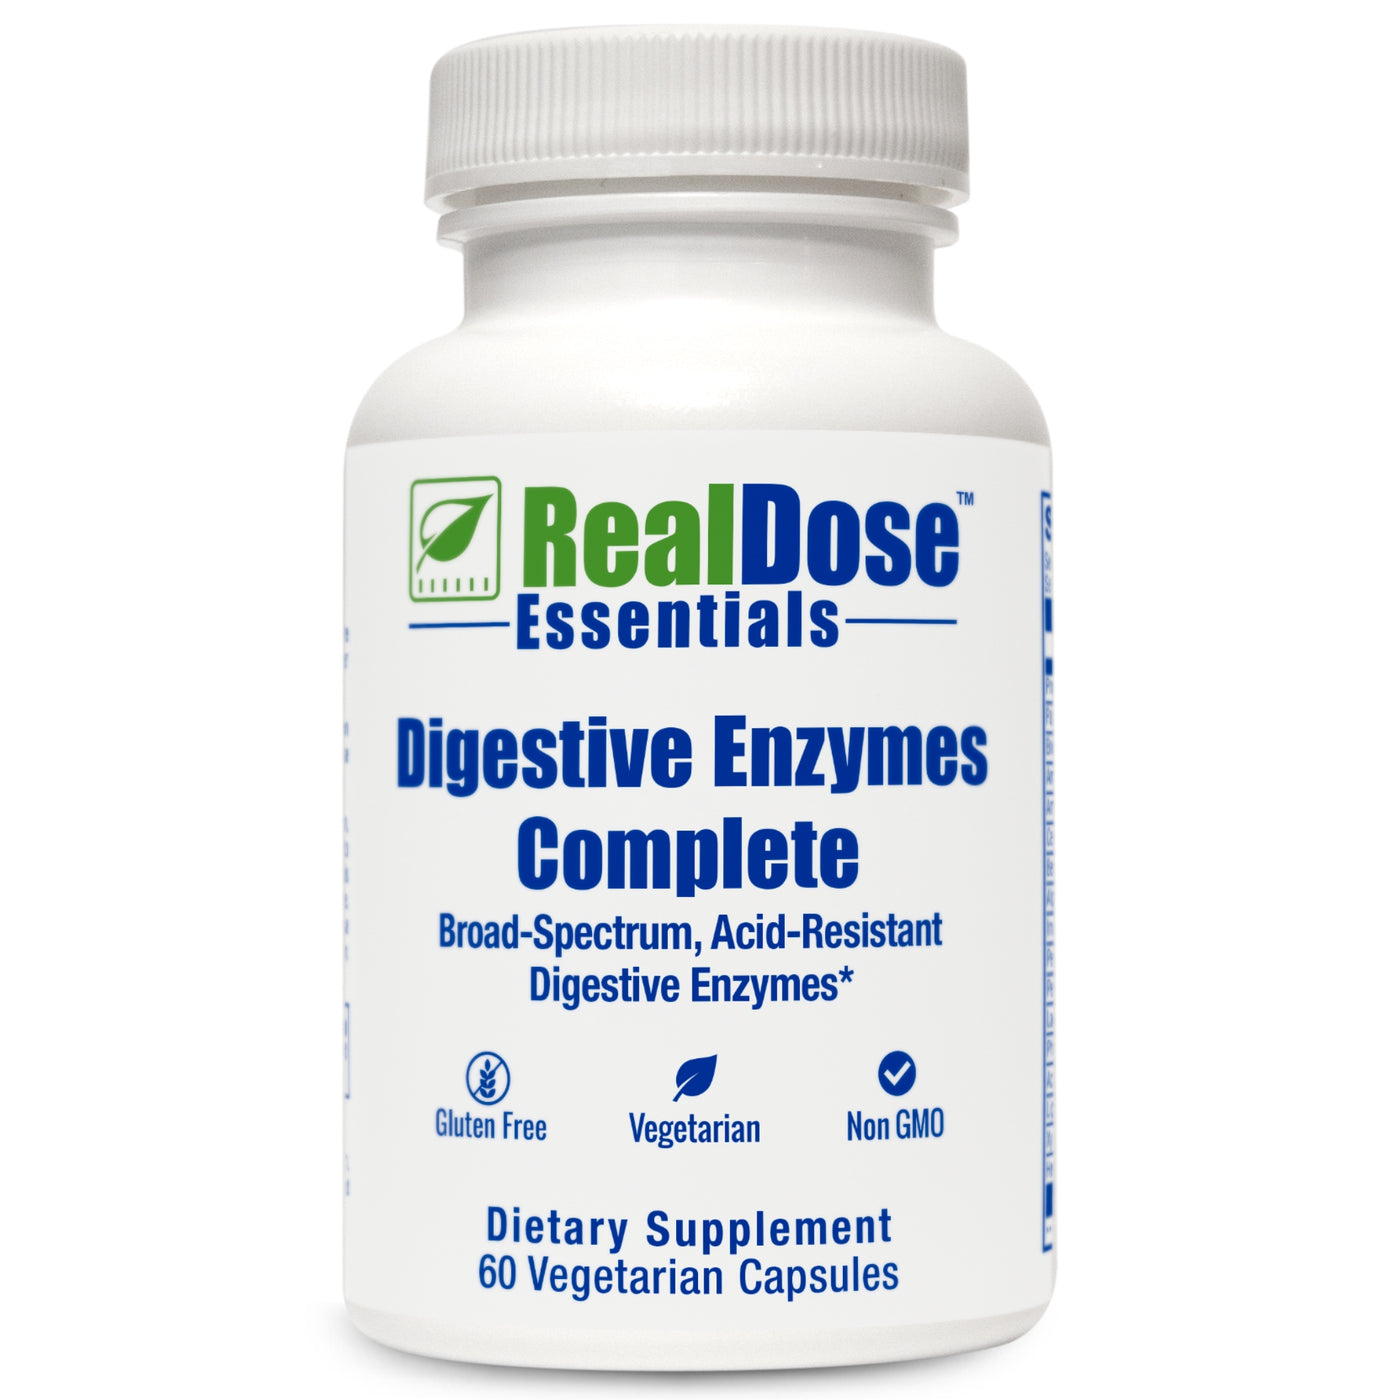 Digestive Enzymes Complete